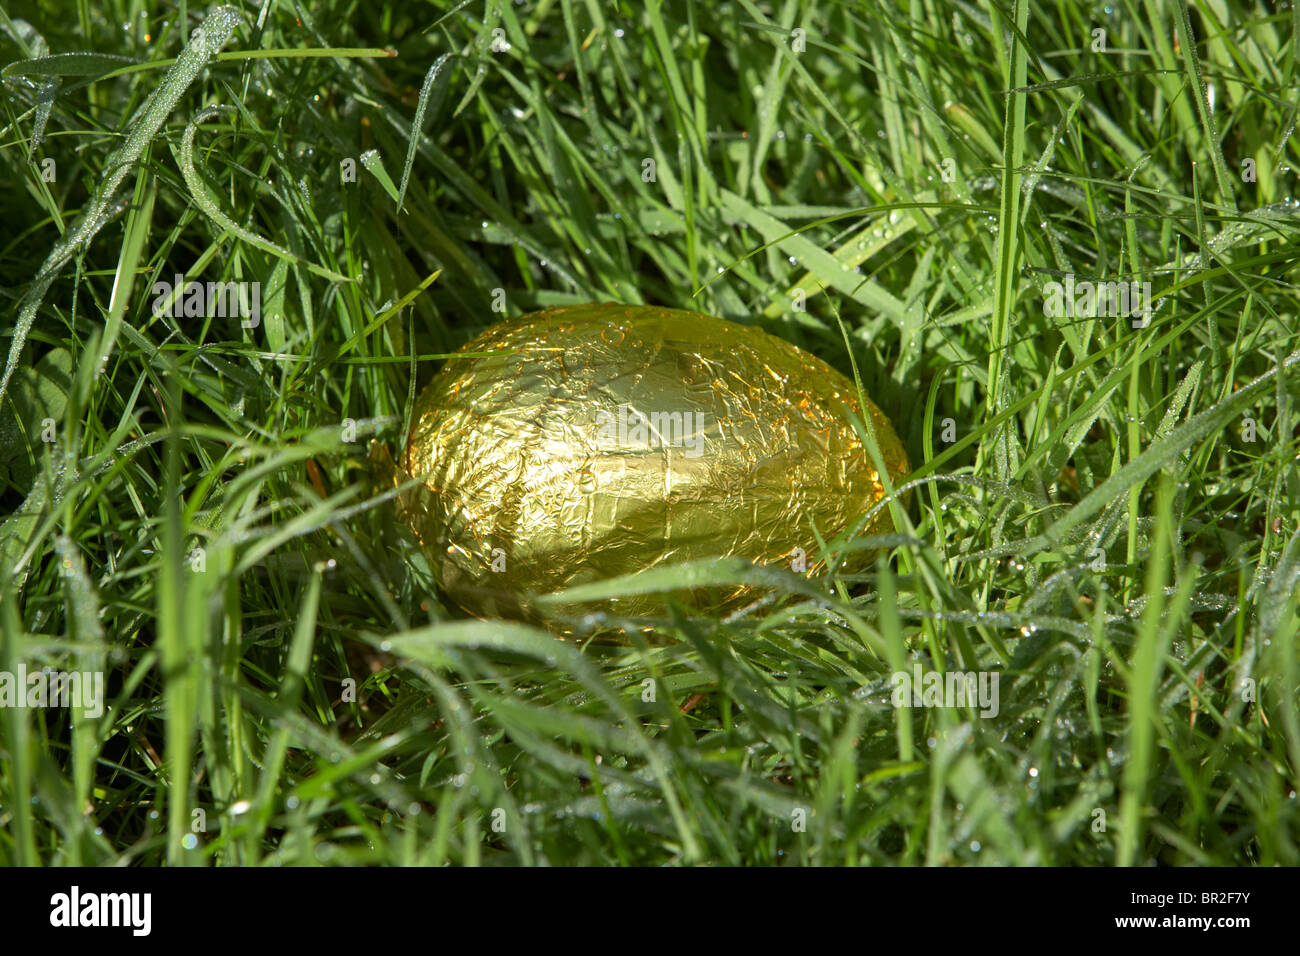 gold foil wrapped easter egg hidden in wet dew covered grass part of an easter egg hunt - Stock Image